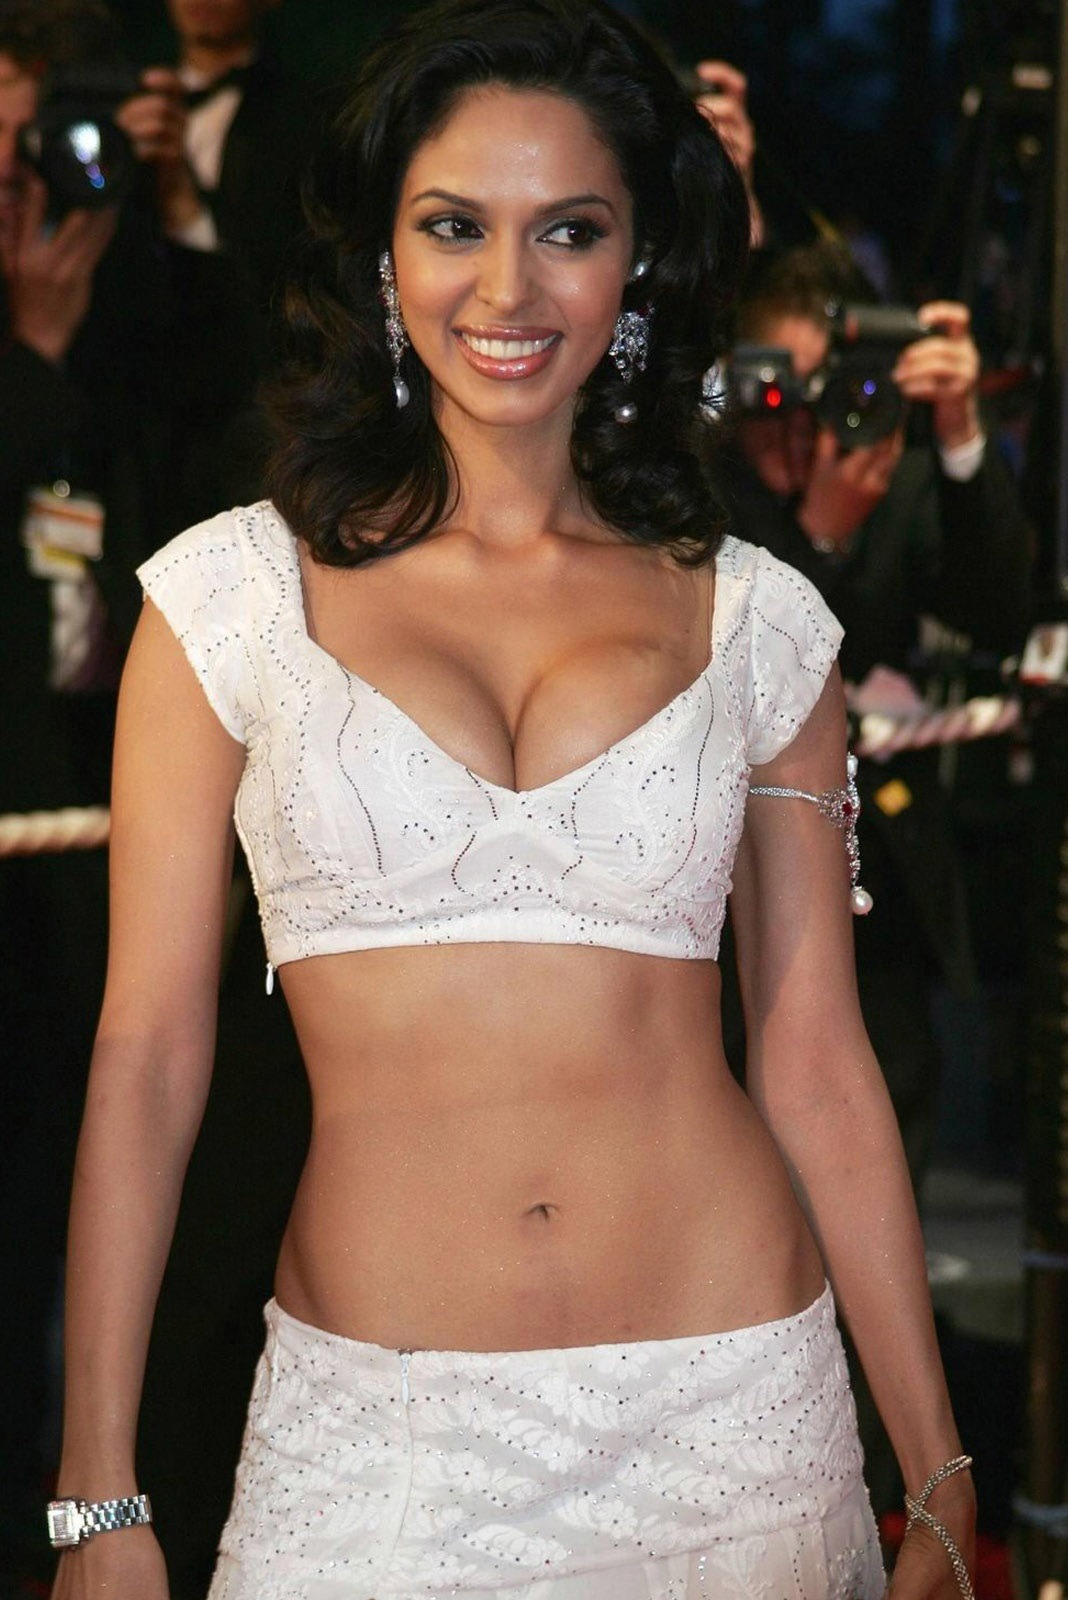 mallika sherawat hot wallpaper collection